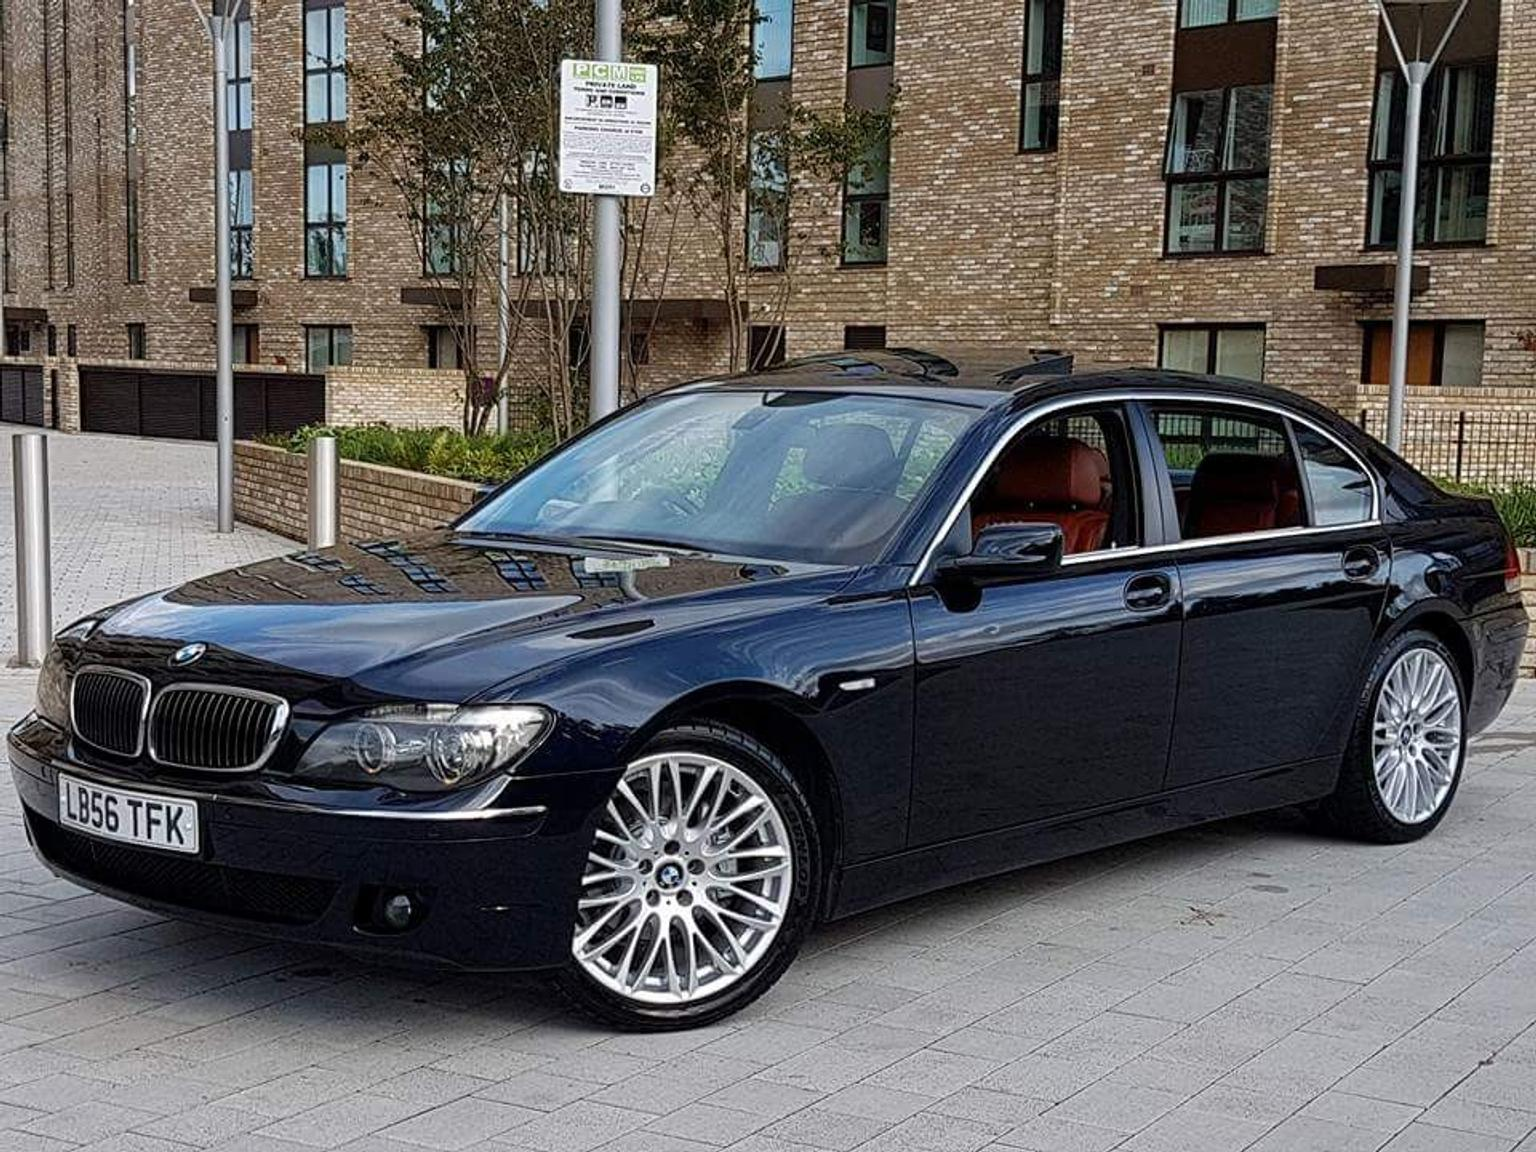 2007 Bmw 730d Se Exclusive Carbon Edition Lw In W3 London For